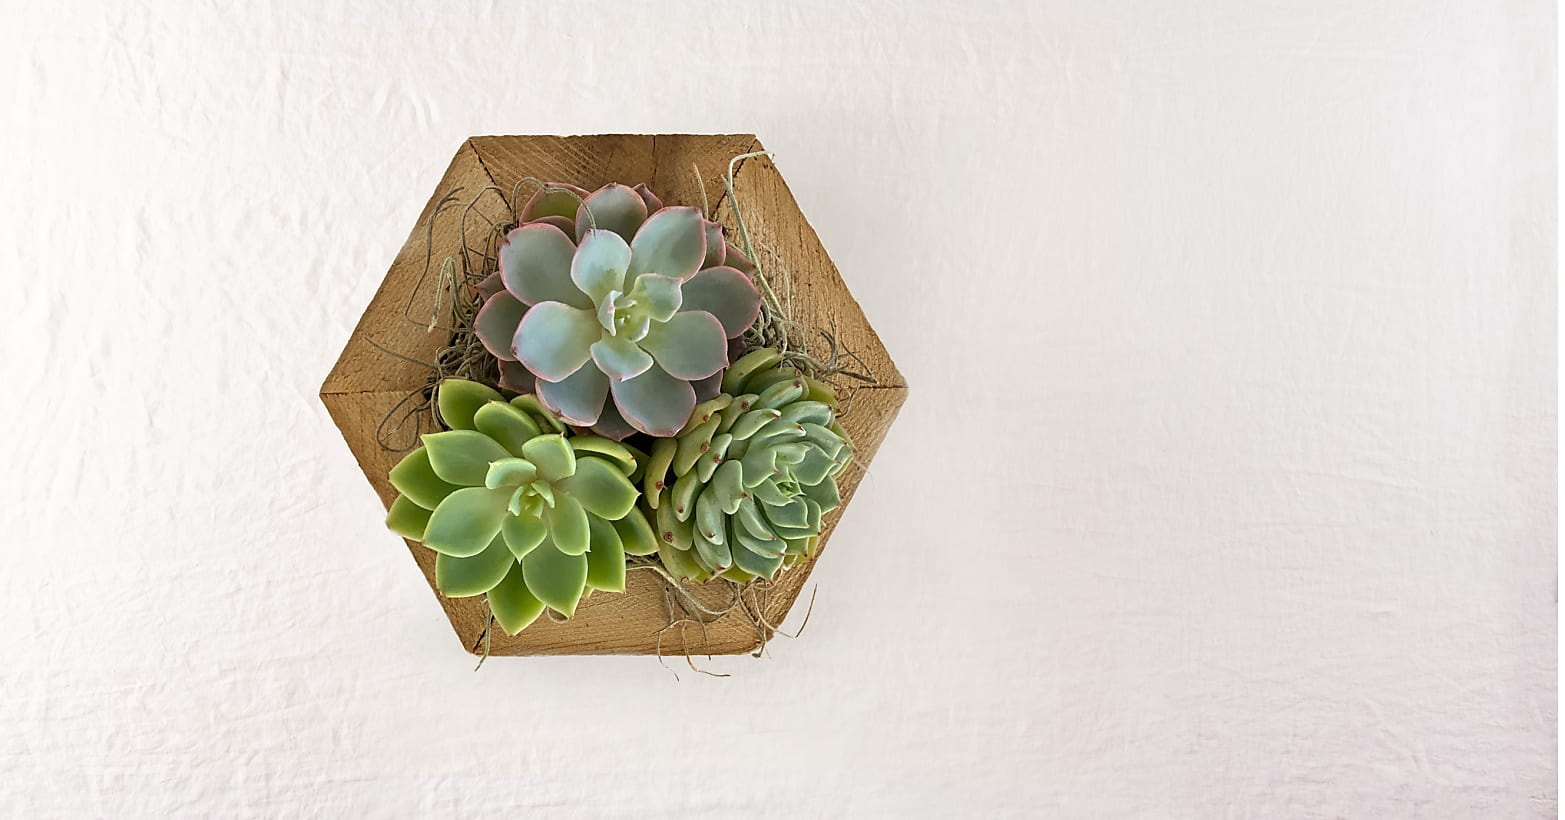 Zen Succulent Hexagon Garden - Image 2 Of 2